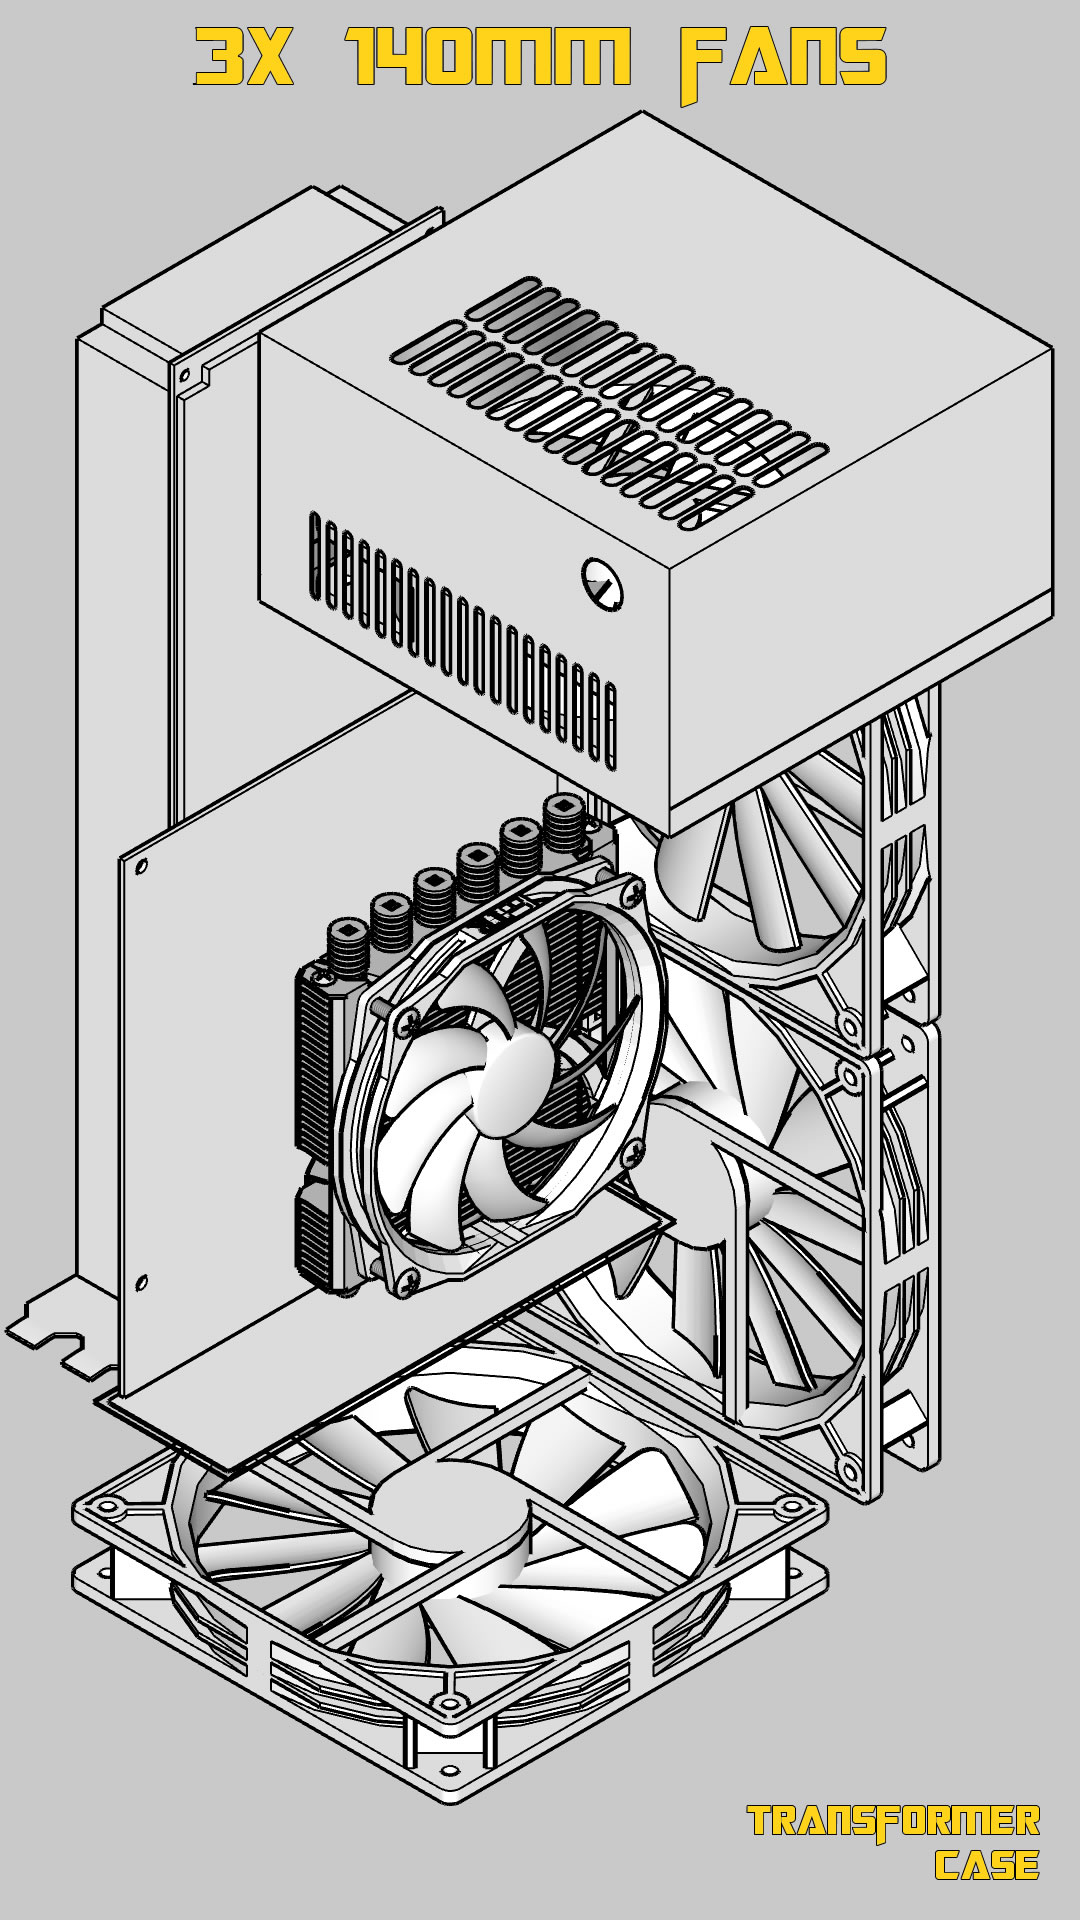 140mm-fan-cooling-isometric.jpg